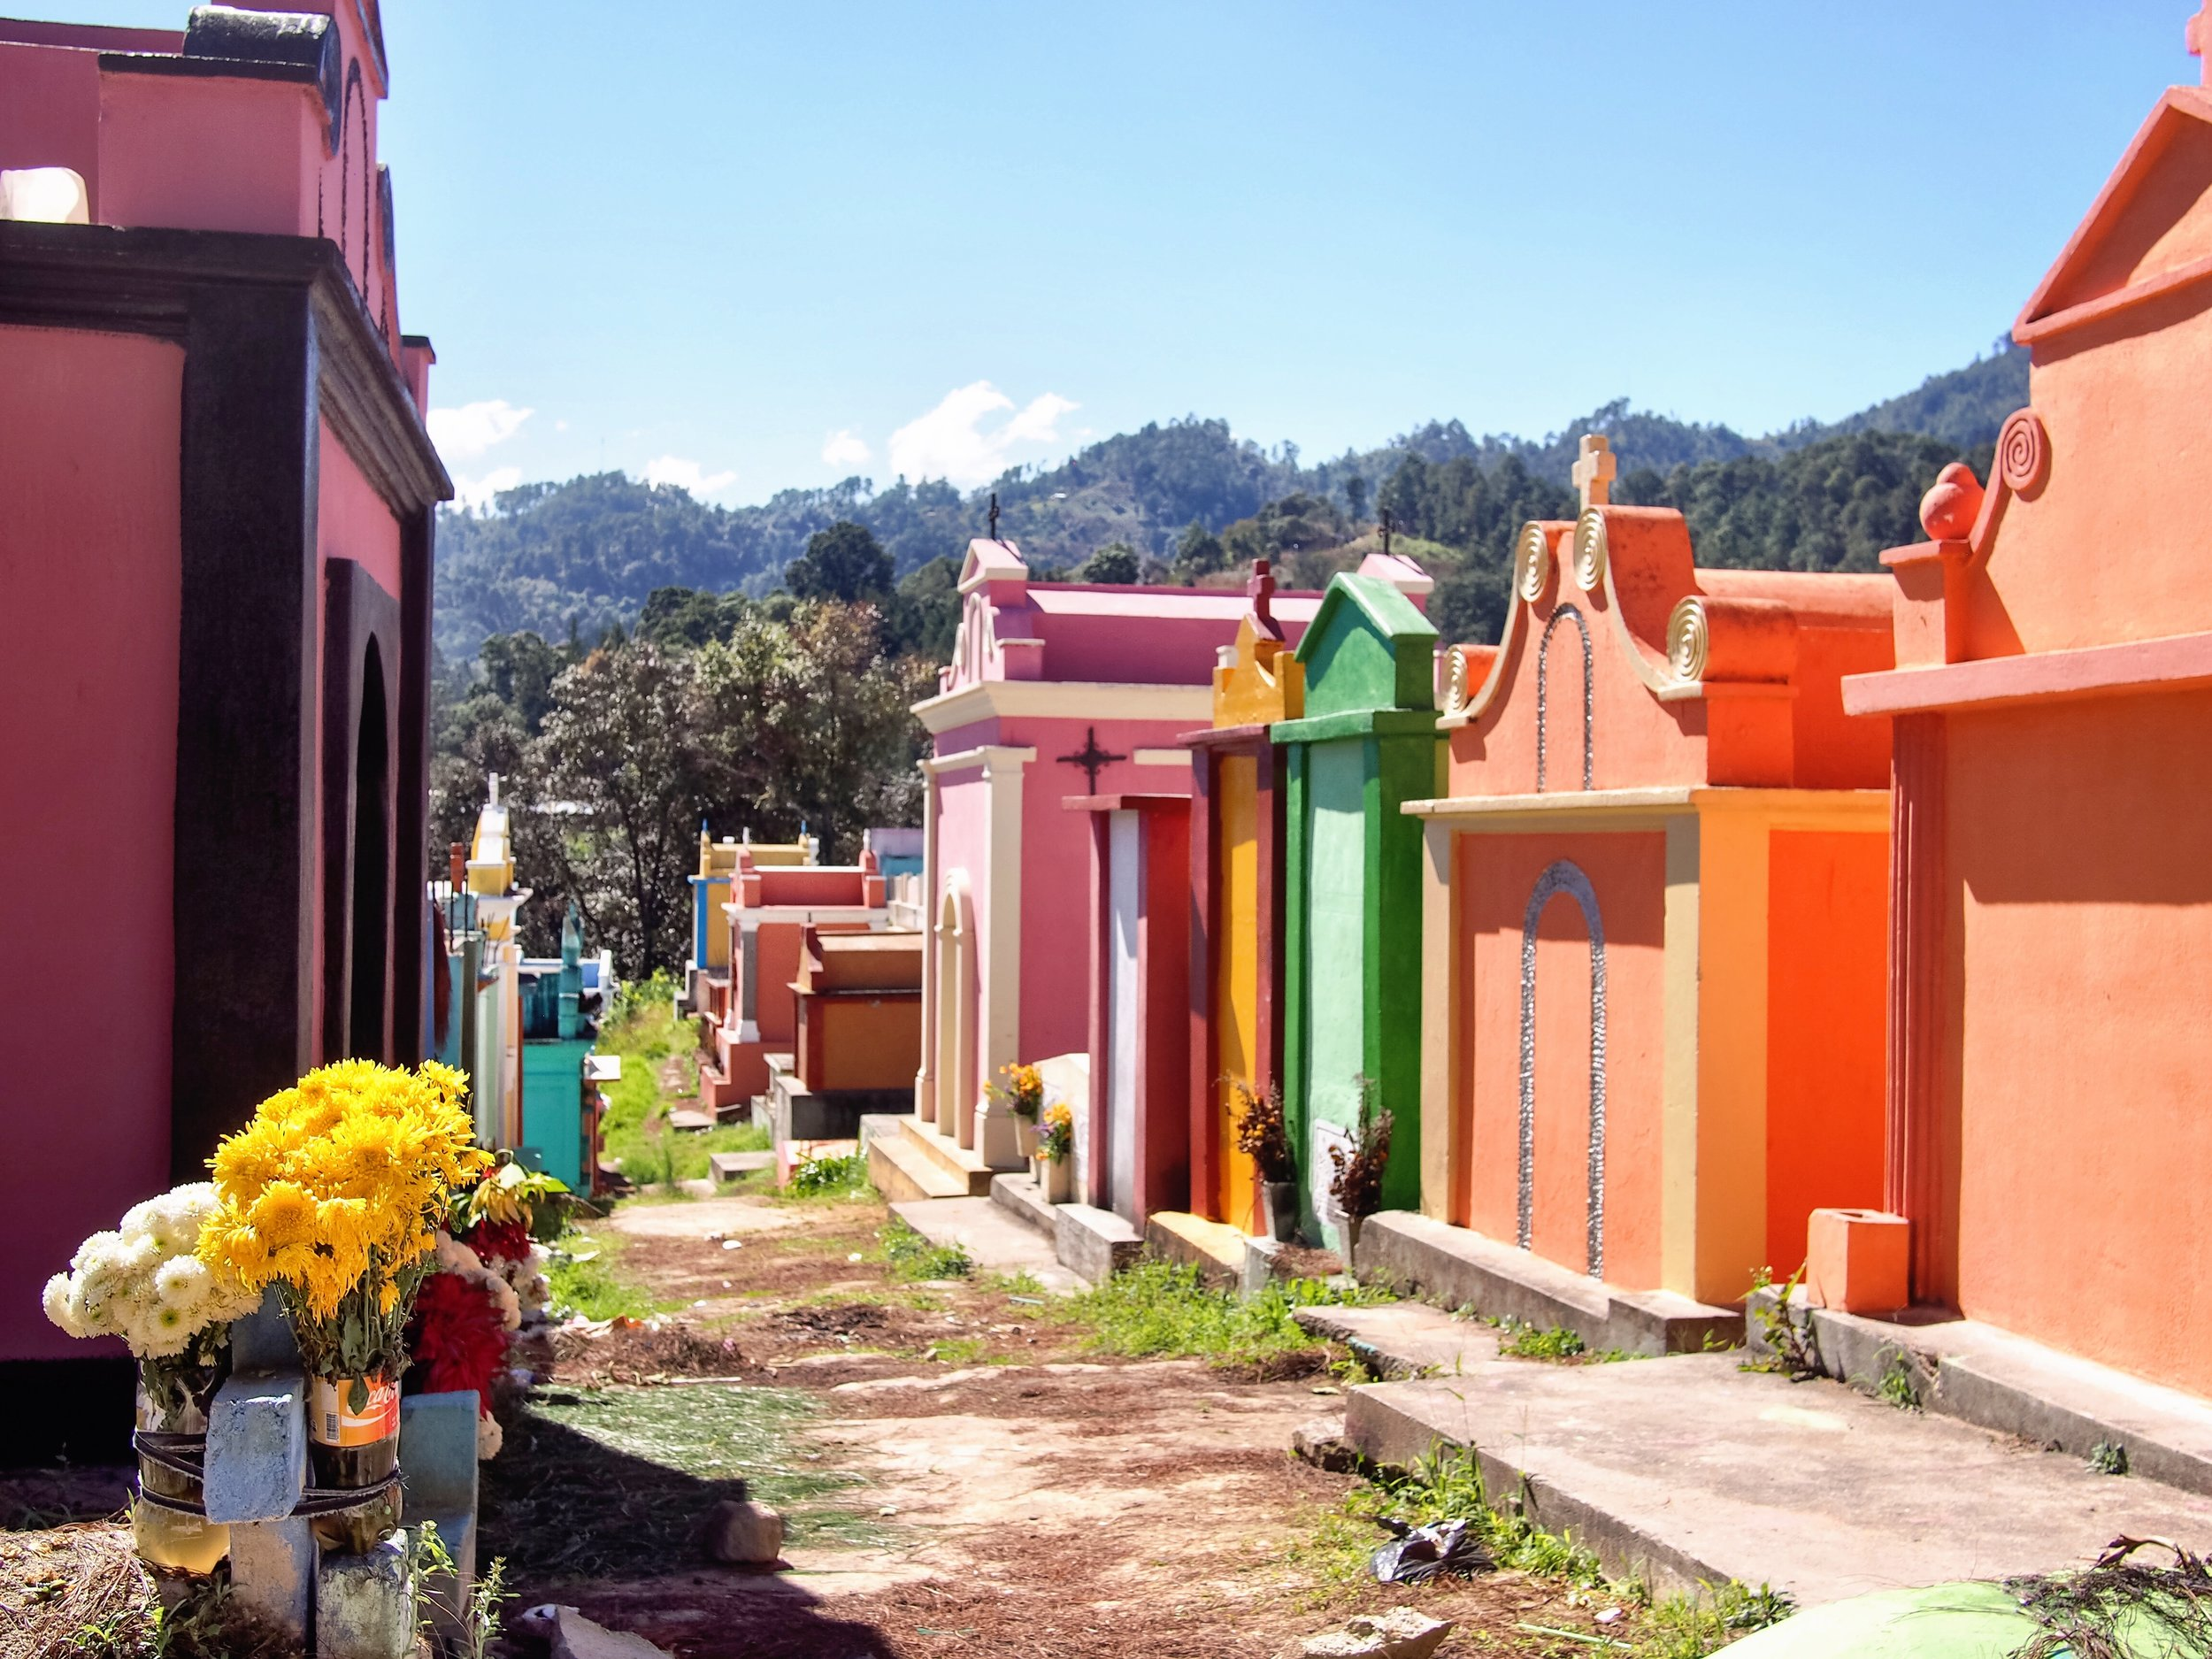 See inside Chichicastenango, one of the most colourful resting places in the world - Lonely Planet Travel News. Article by James Gabriel Martin. Photographs by Shaun Robertson from This Life in Trips